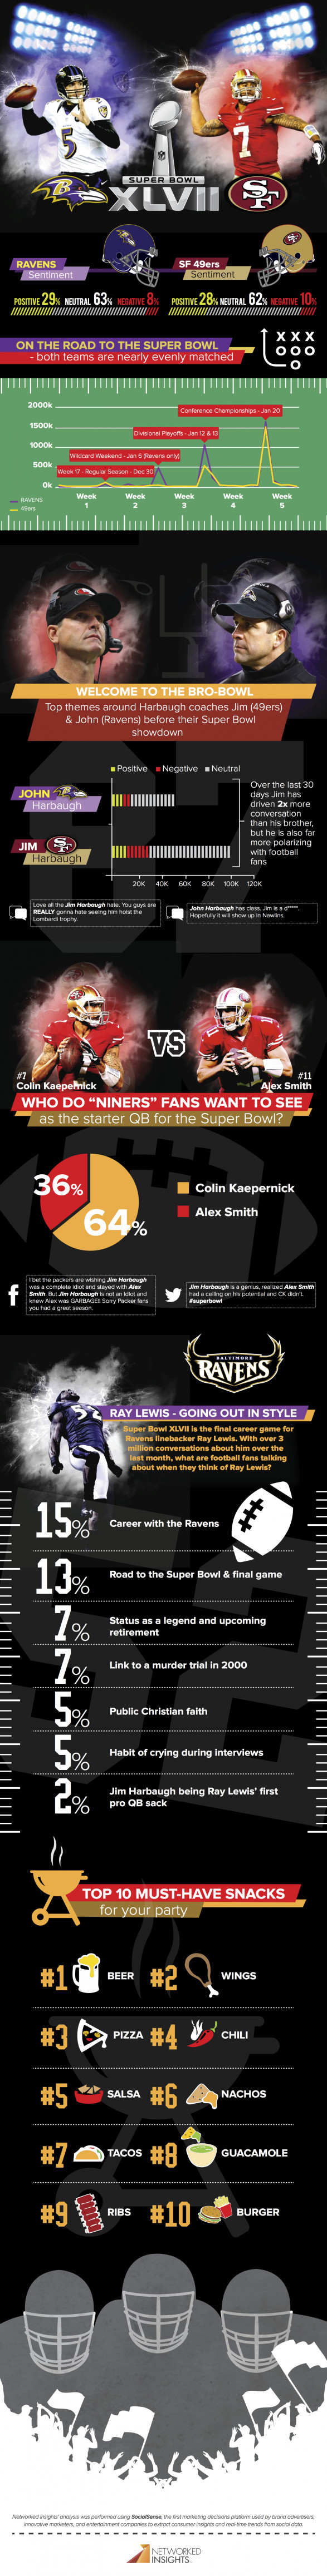 Super Bowl XLVII and Social Media